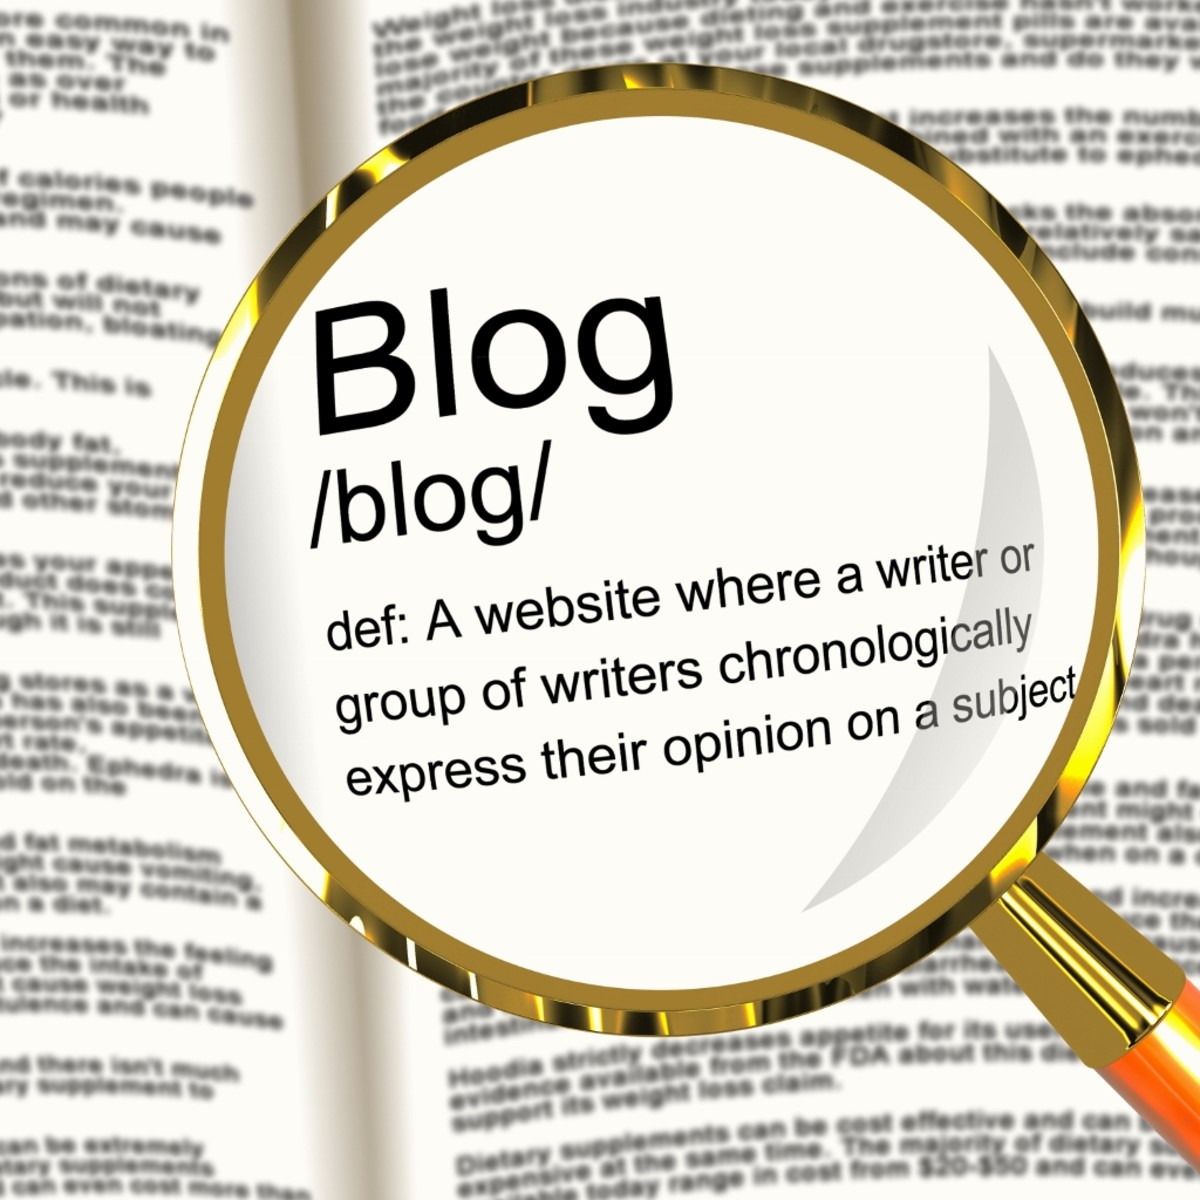 Blogging can be an enjoyable hobby or a profitable career - it's your choice